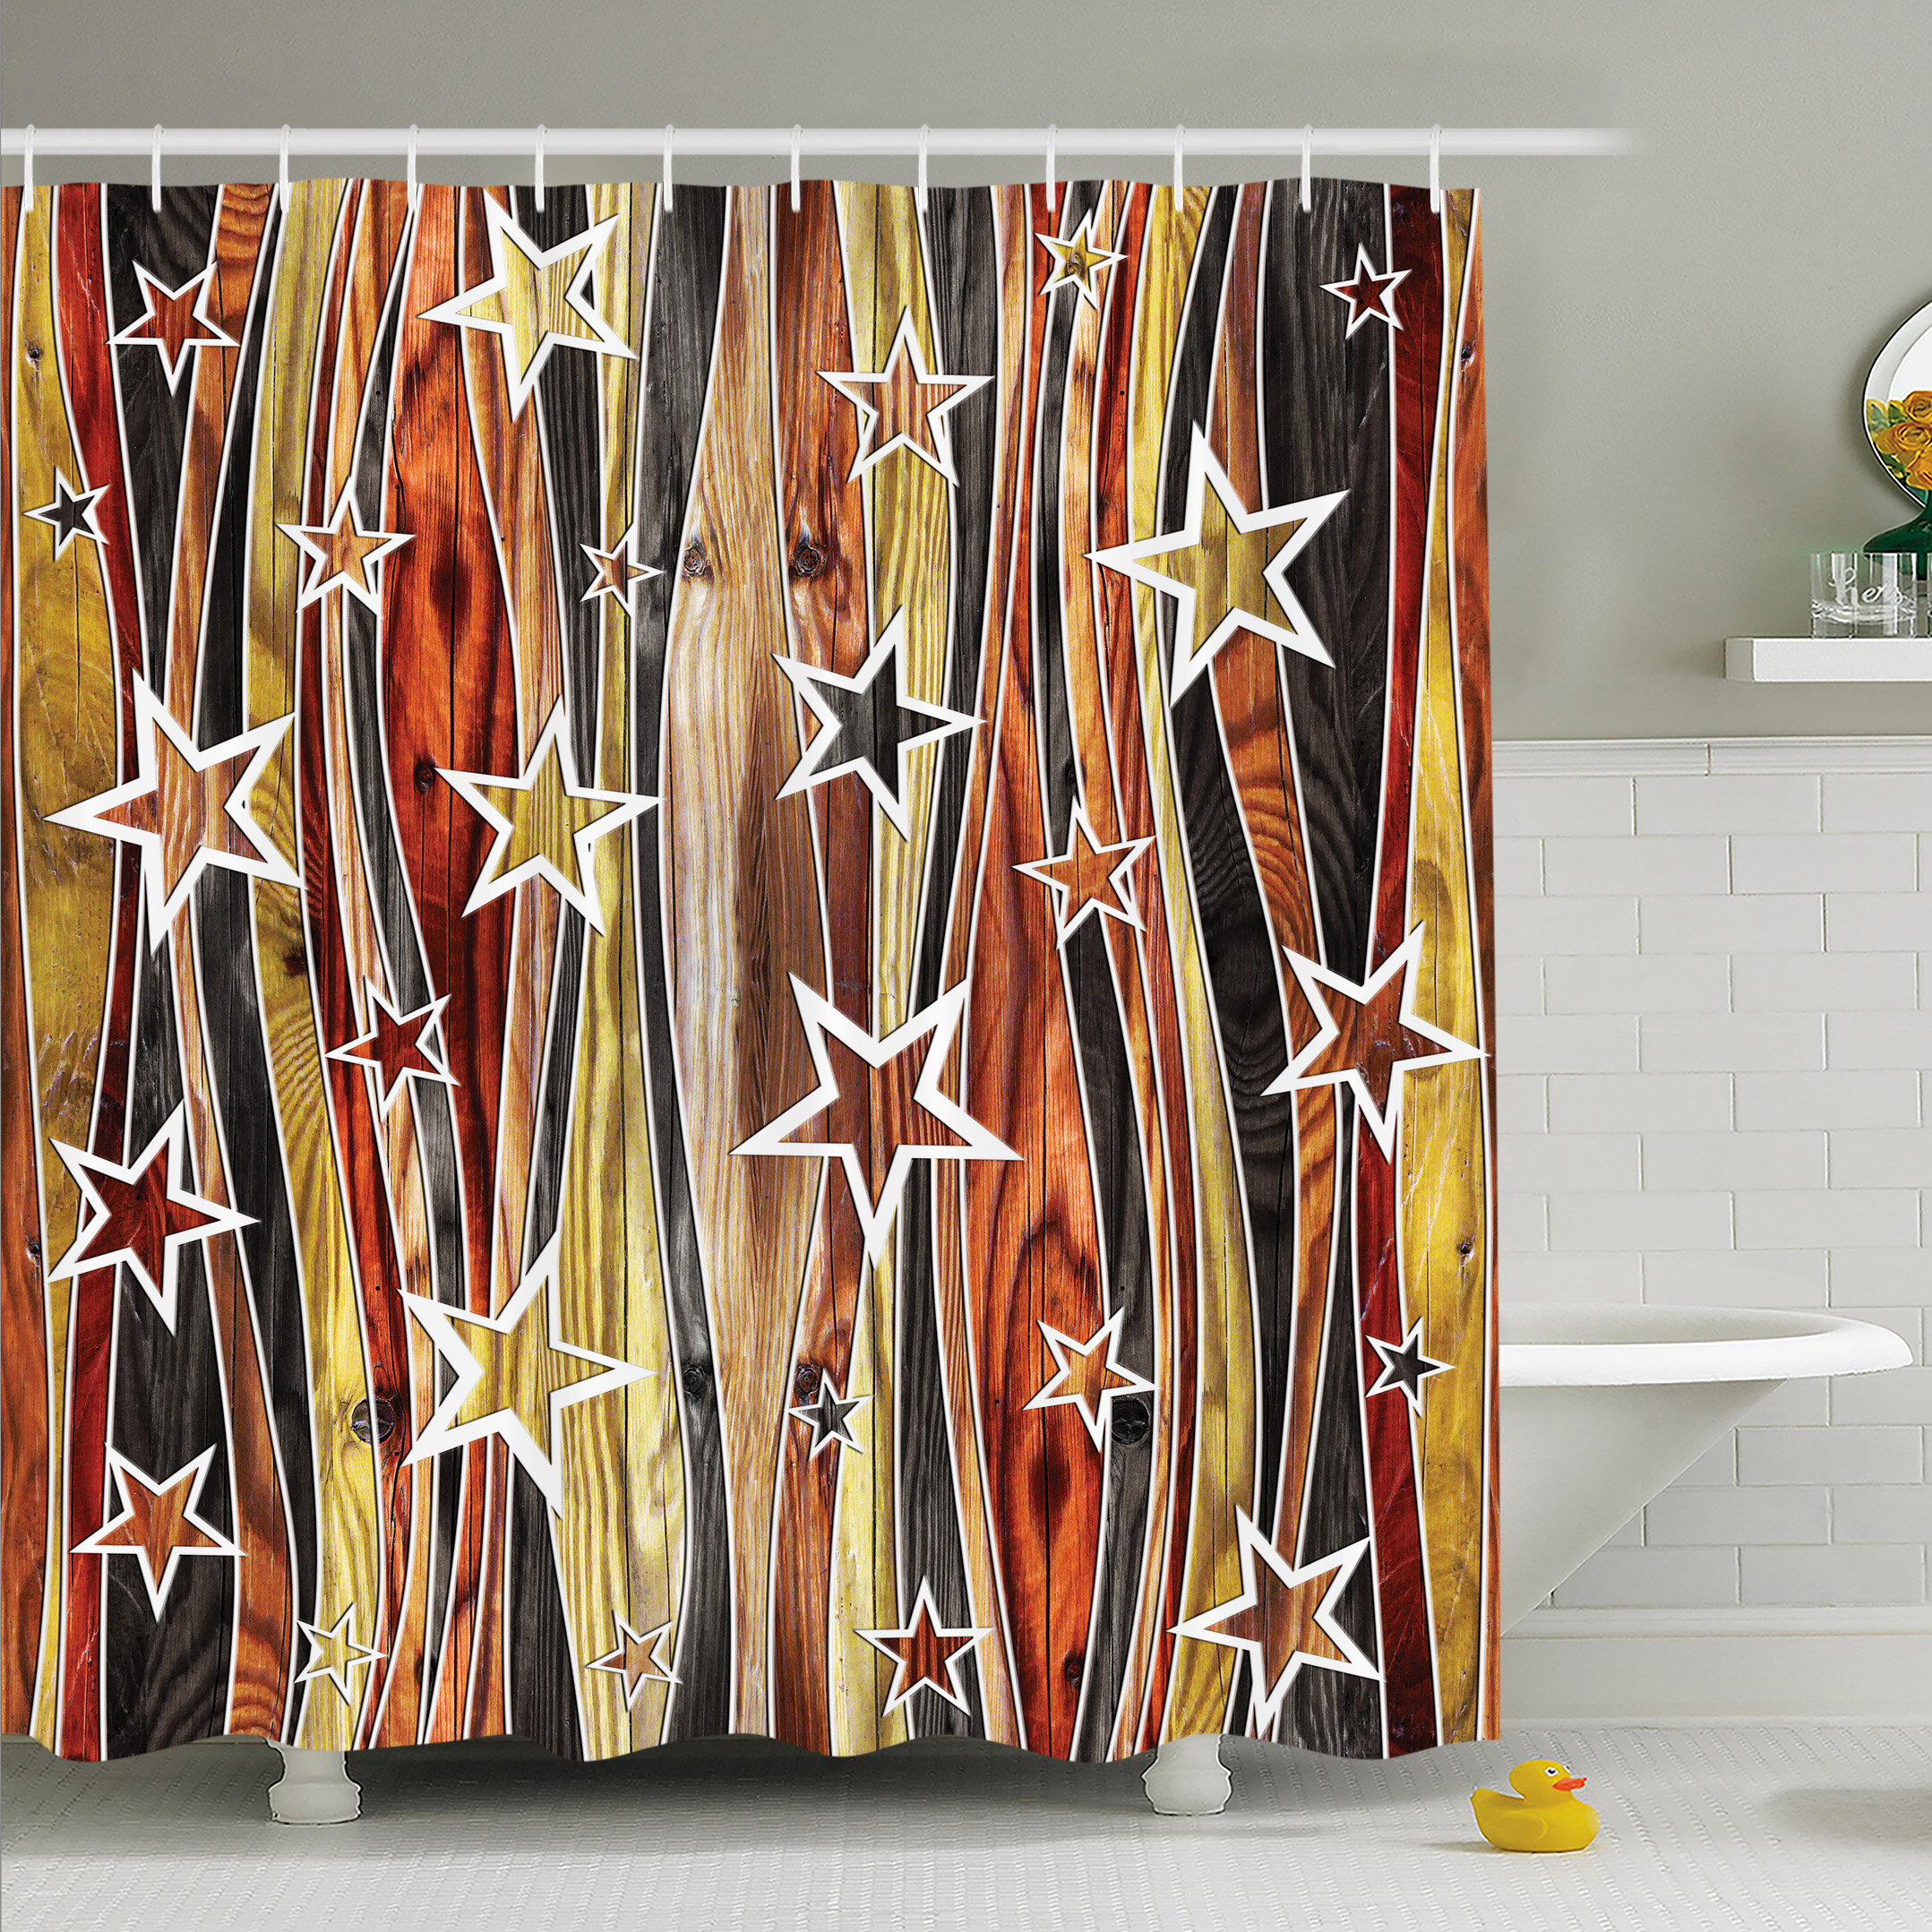 Rustic Home Vertical Striped Vibrating Decorative Timber Design With Various Star Figures Shower Curtain Set